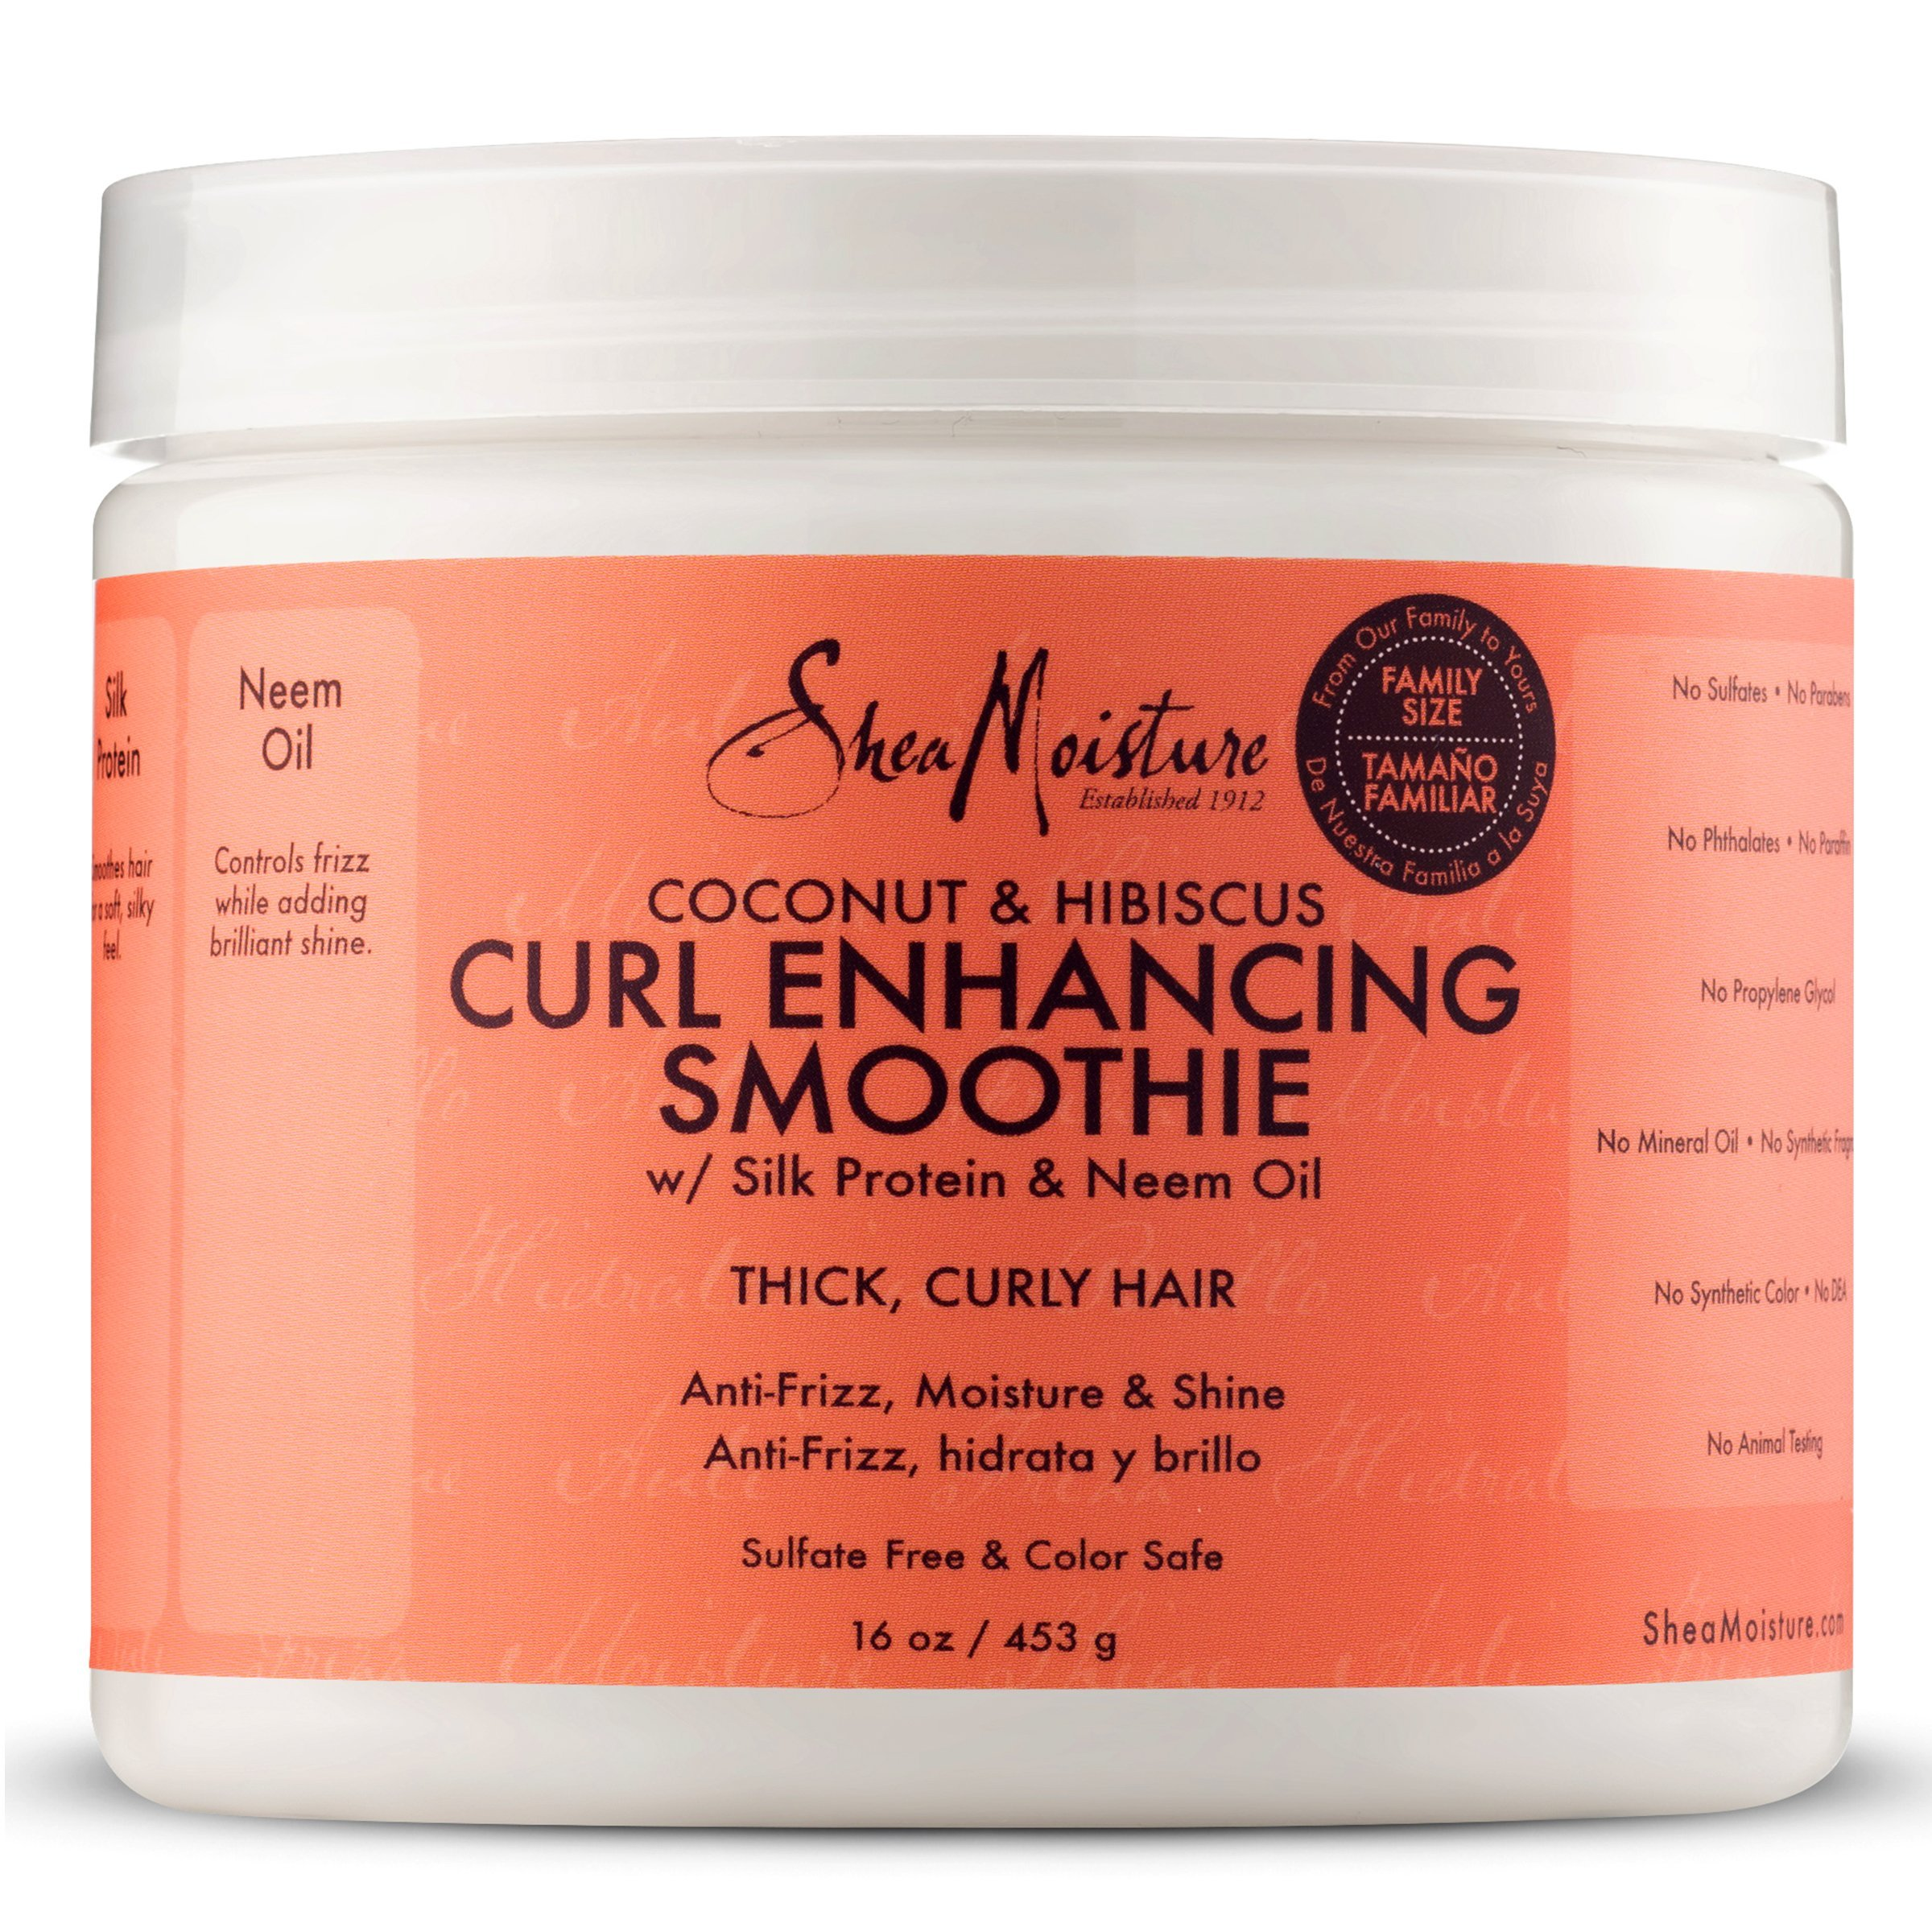 SheaMoisture Coconut and Hibiscus Curl Enhancing Smoothie | Family Size | 16 oz.